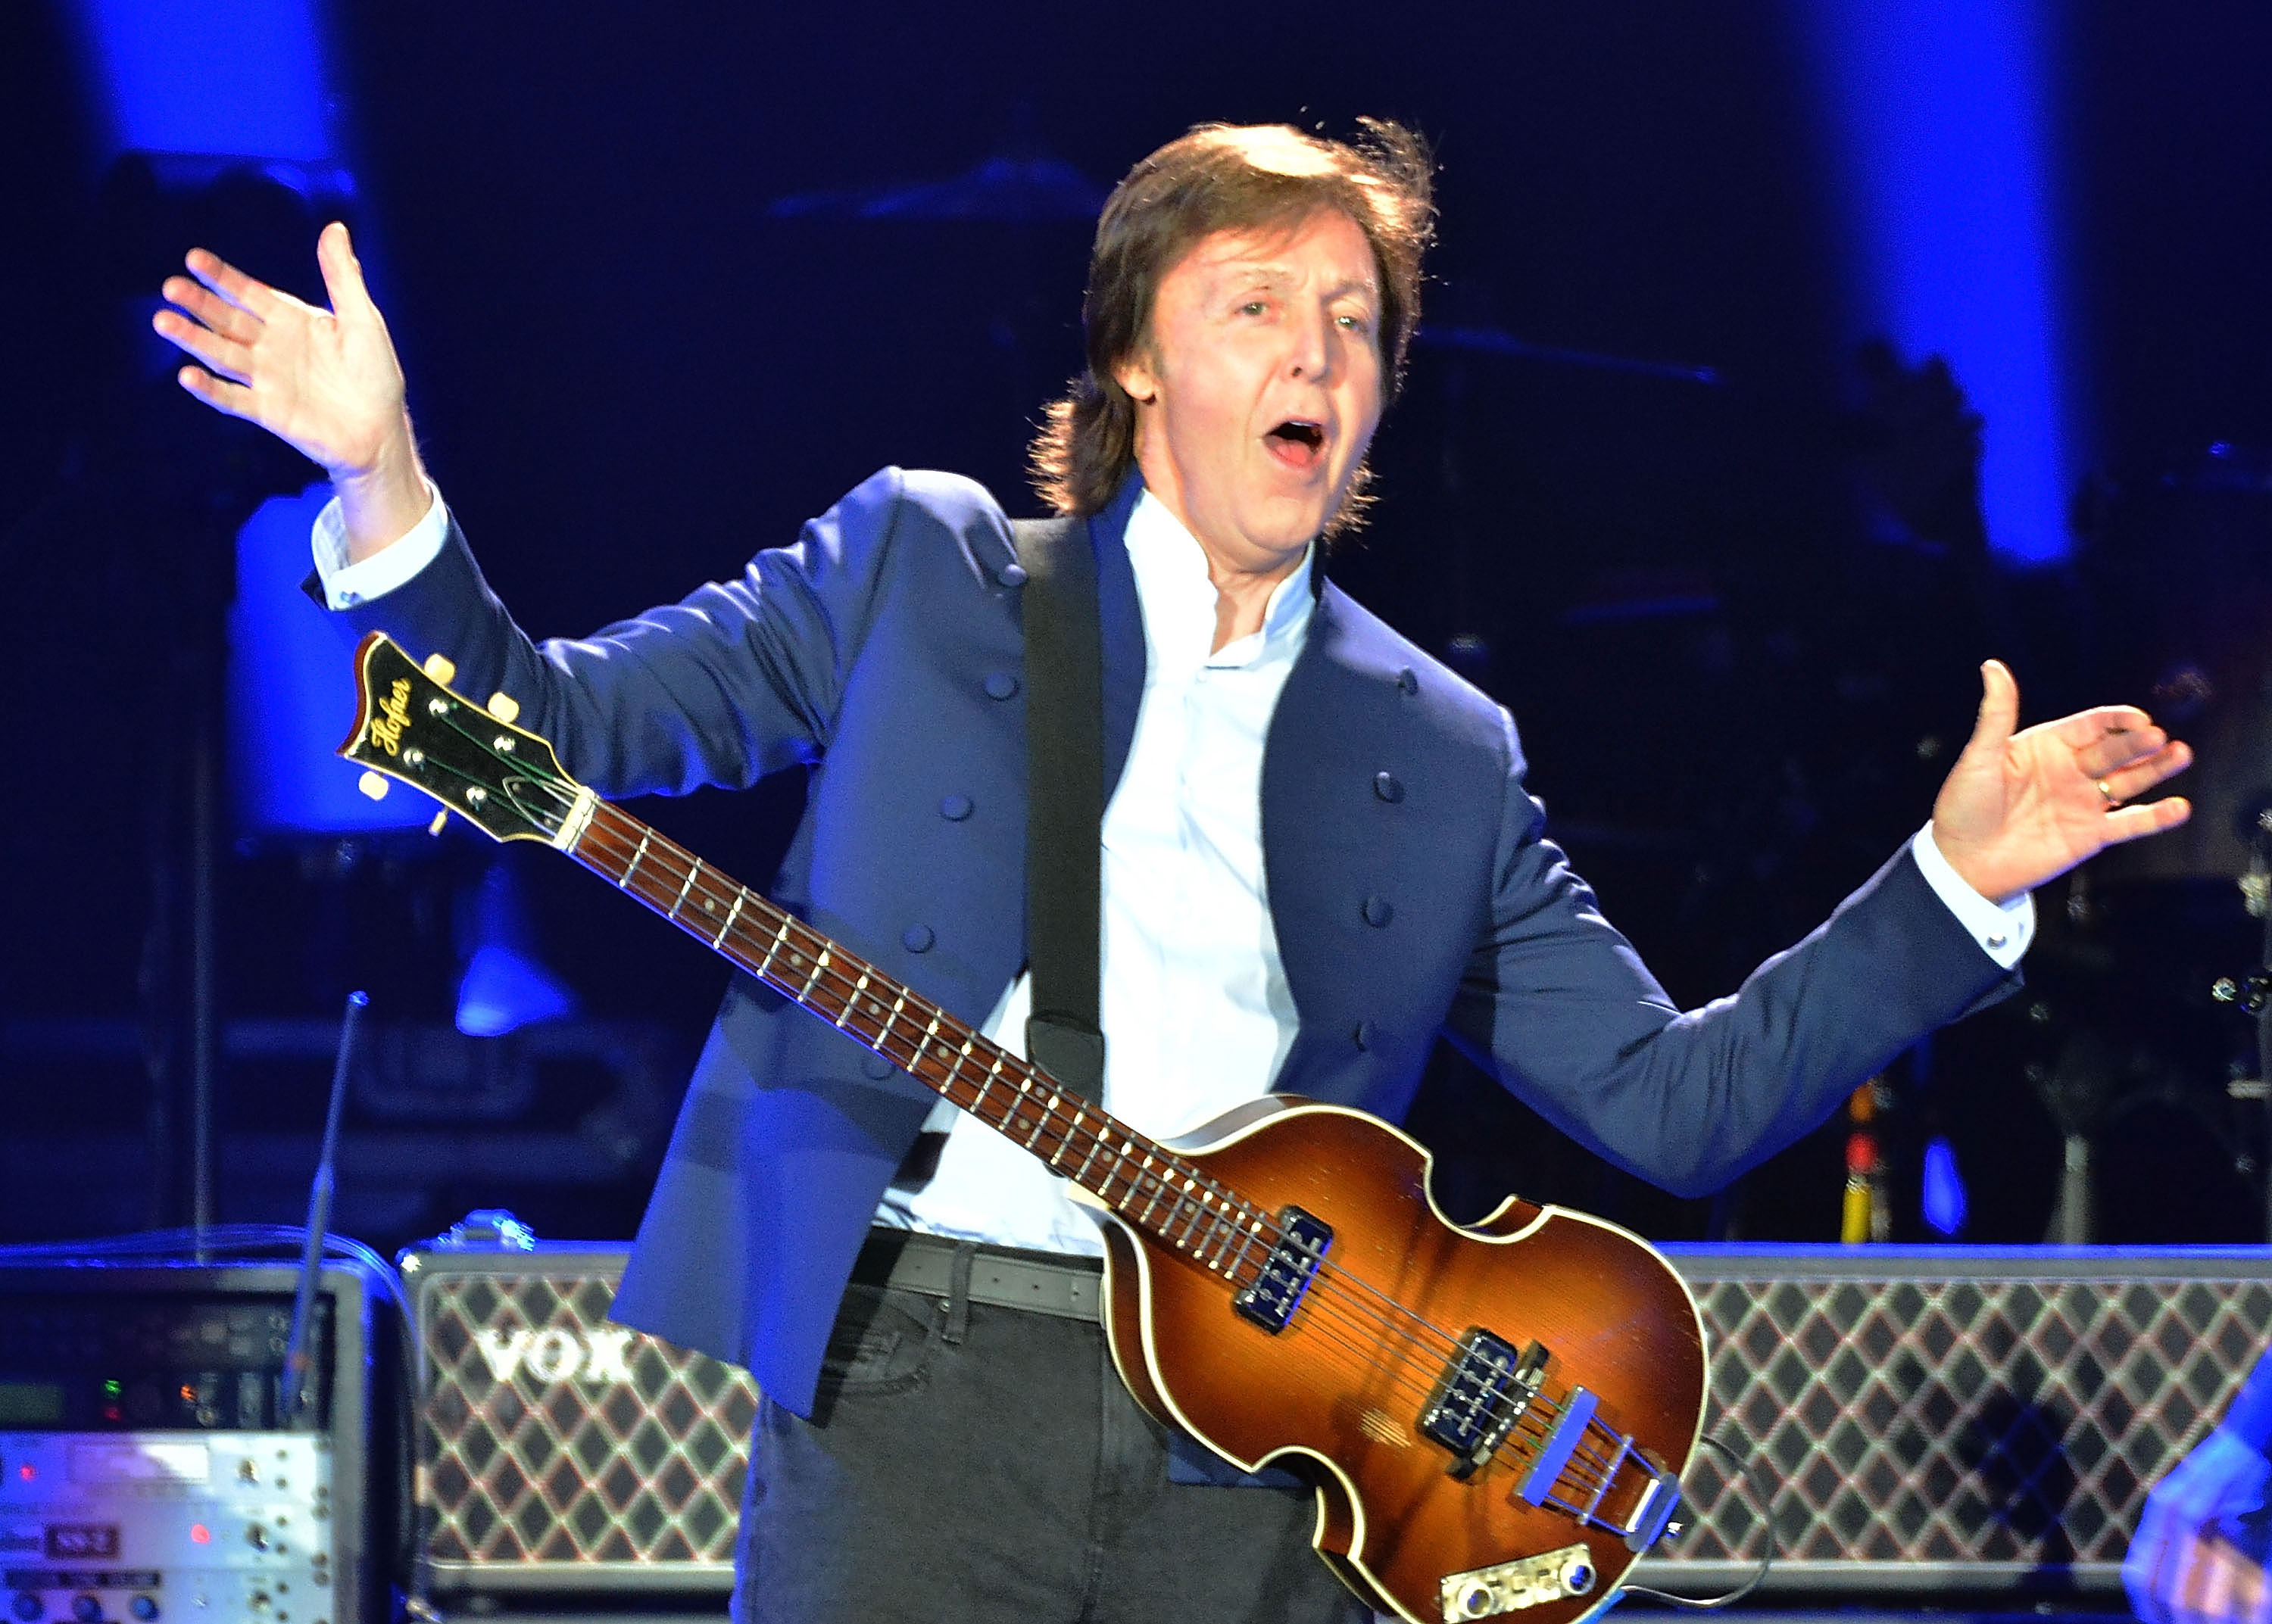 Paul McCartney may finally get back the rights to his Beatles tracks